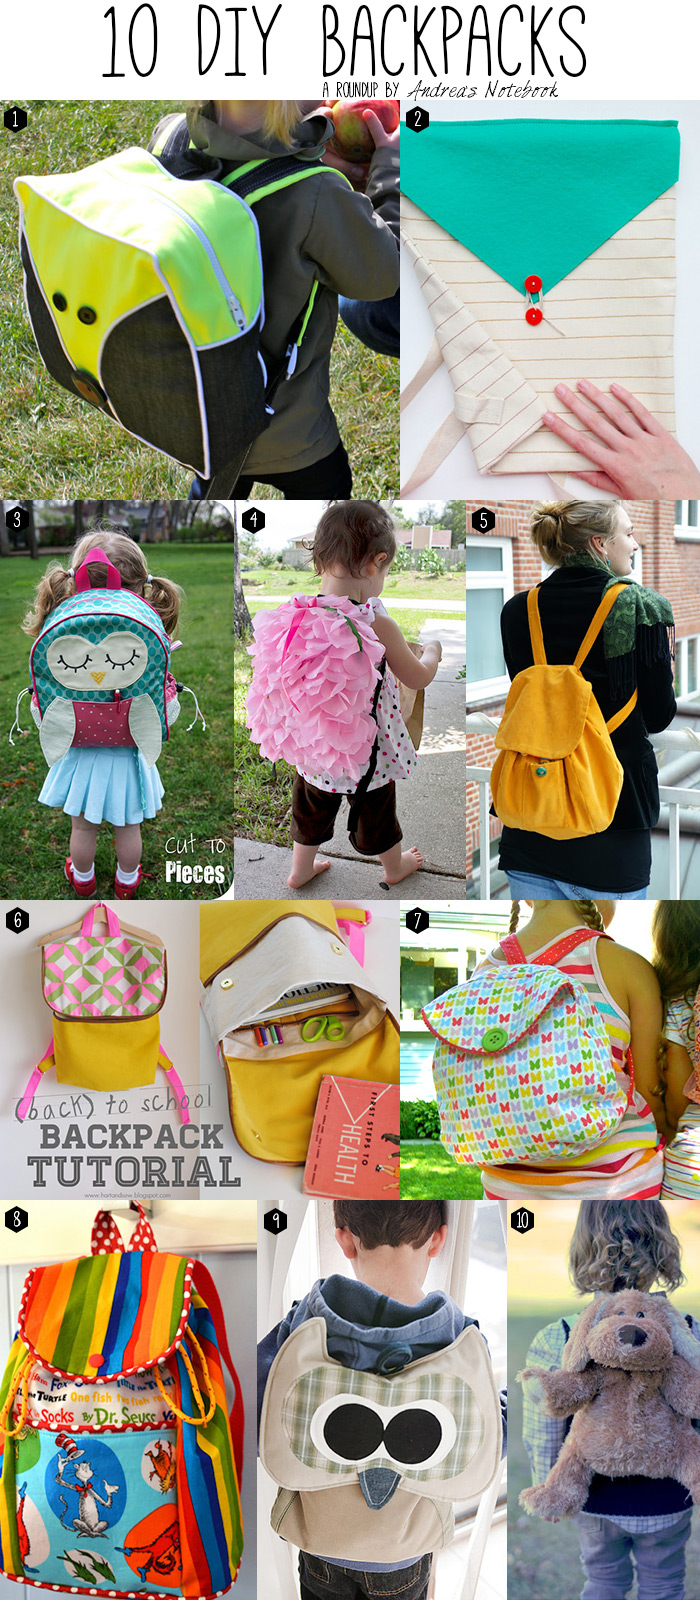 10 DIY backpacks!